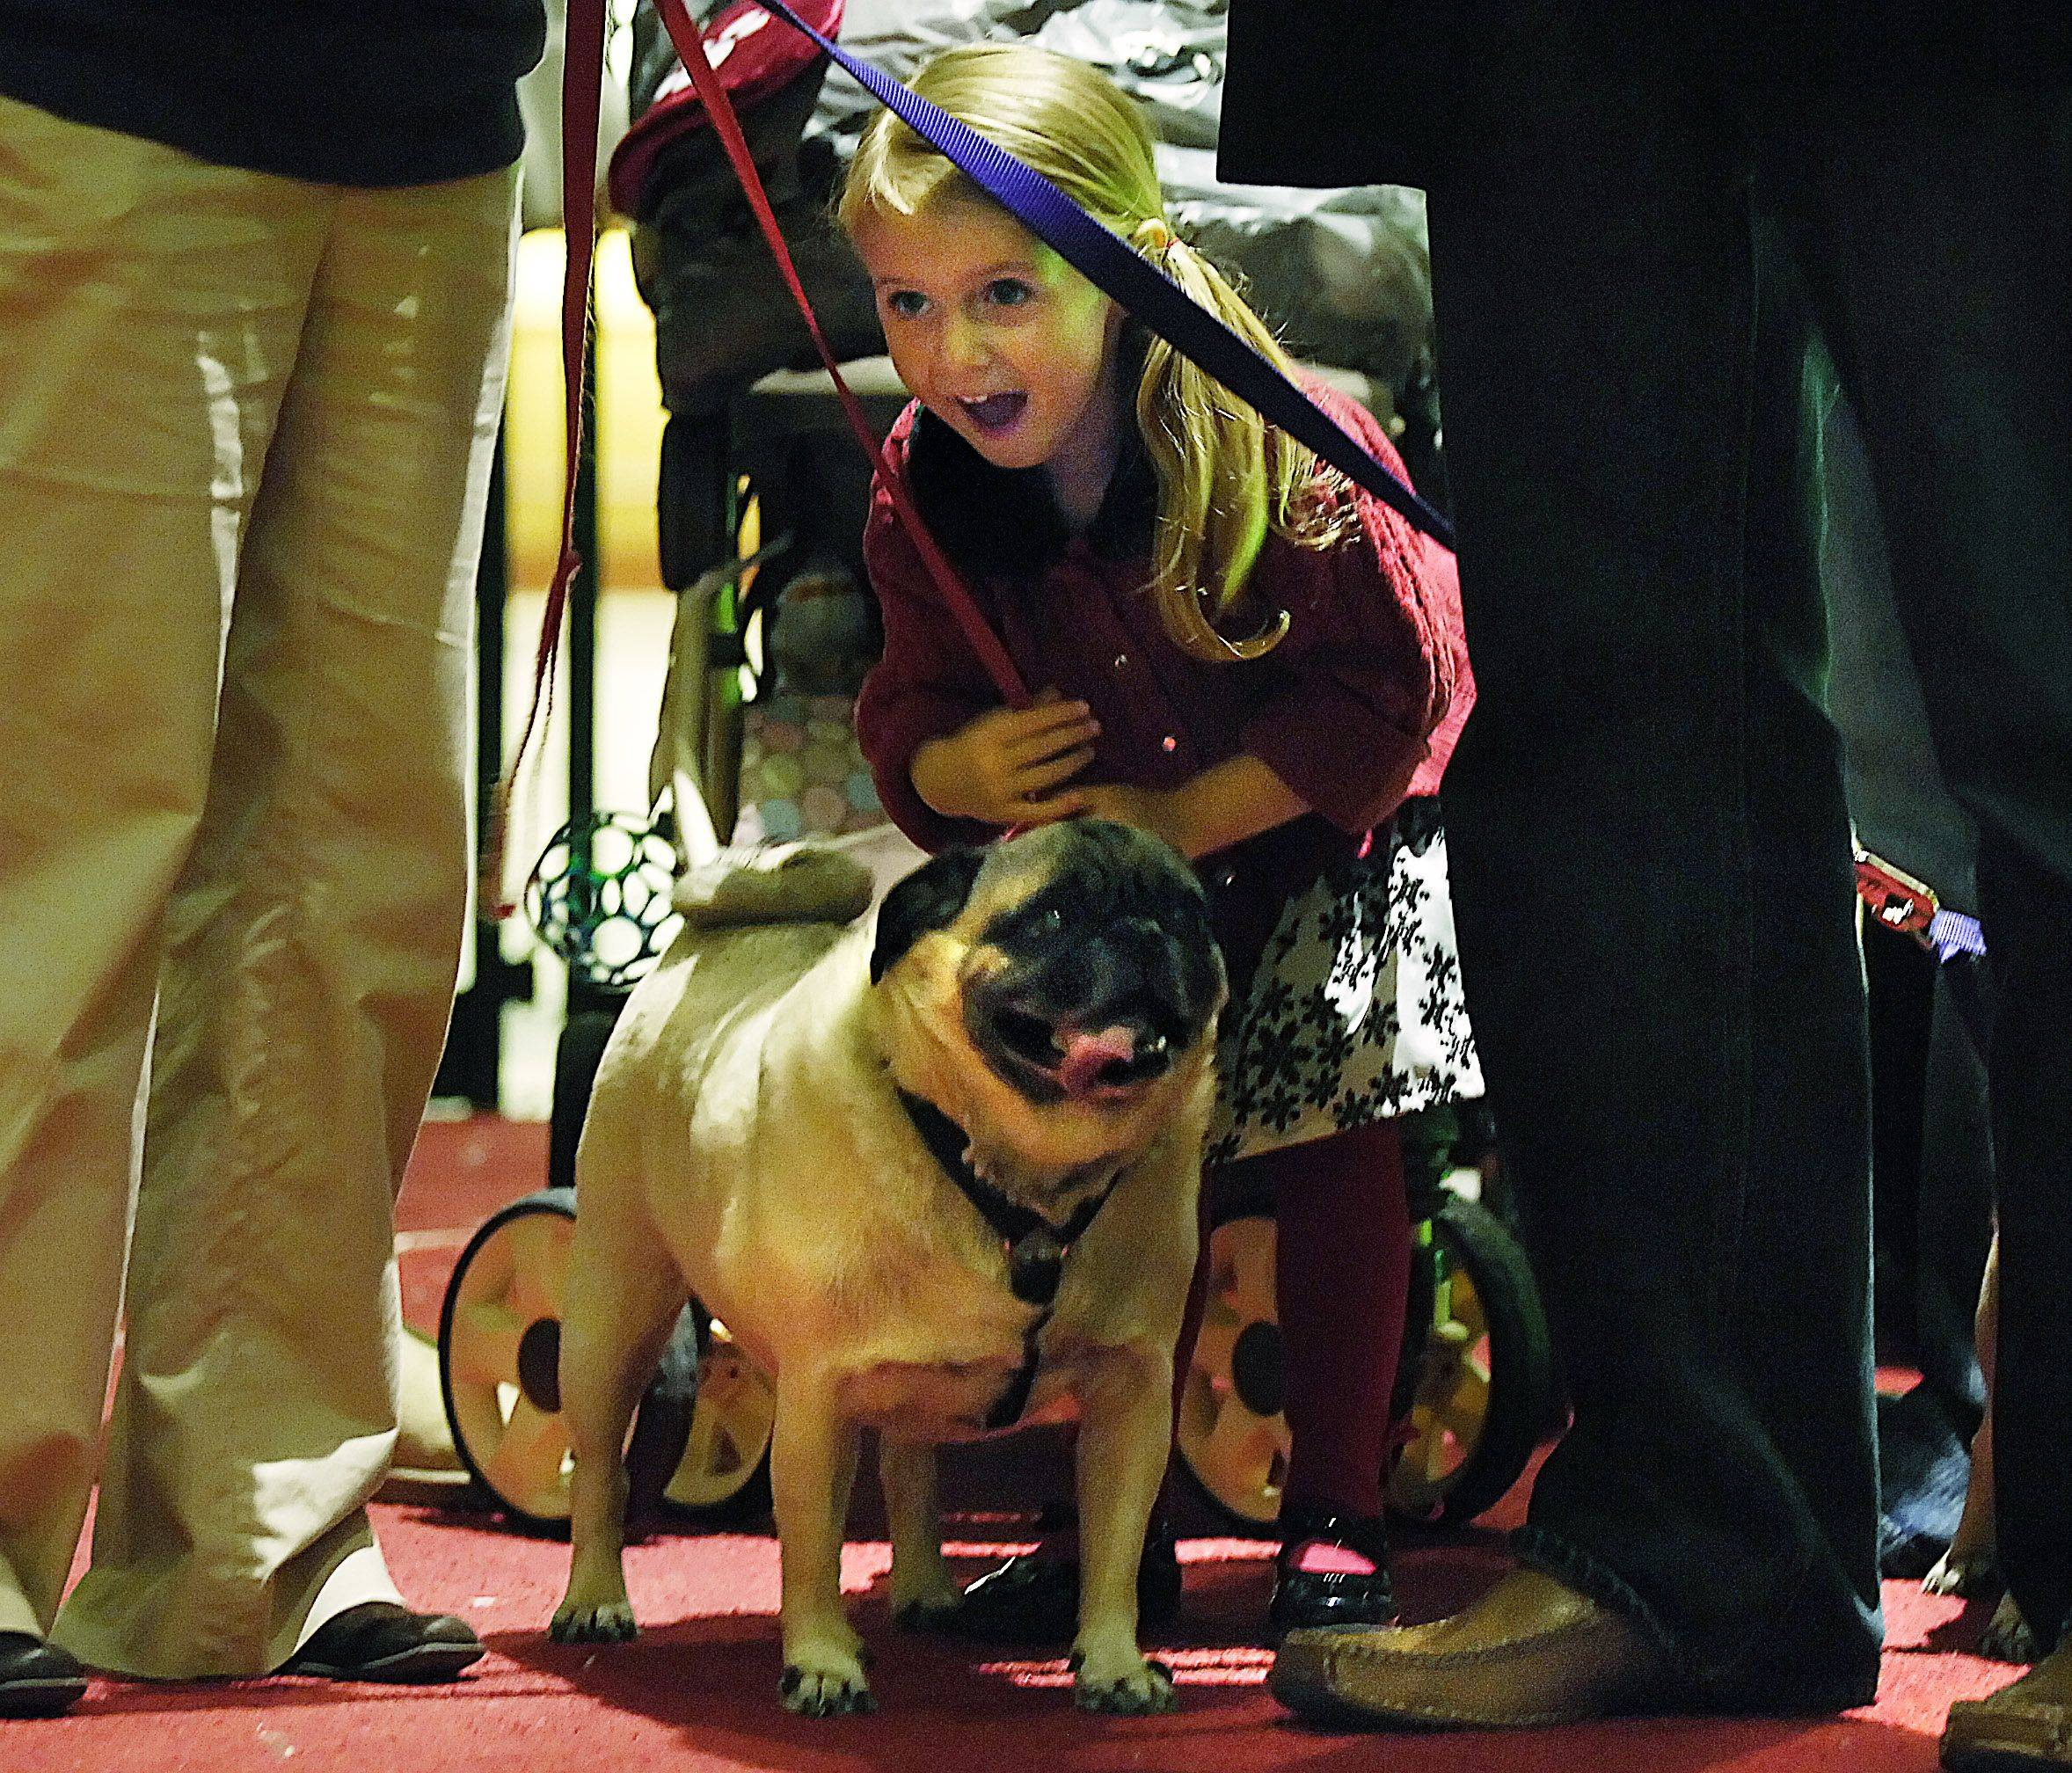 Three-year-old Grace Haase reacts as she sees Santa Claus while her pug Guapo seems less interested as they wait their turn in line Monday evening at the Spring Hill Mall in West Dundee. The mall is welcoming pet owners again to have their photo taken with Santa on Monday the 13th, 6-9 pm. The Haase family is from Crystal Lake.